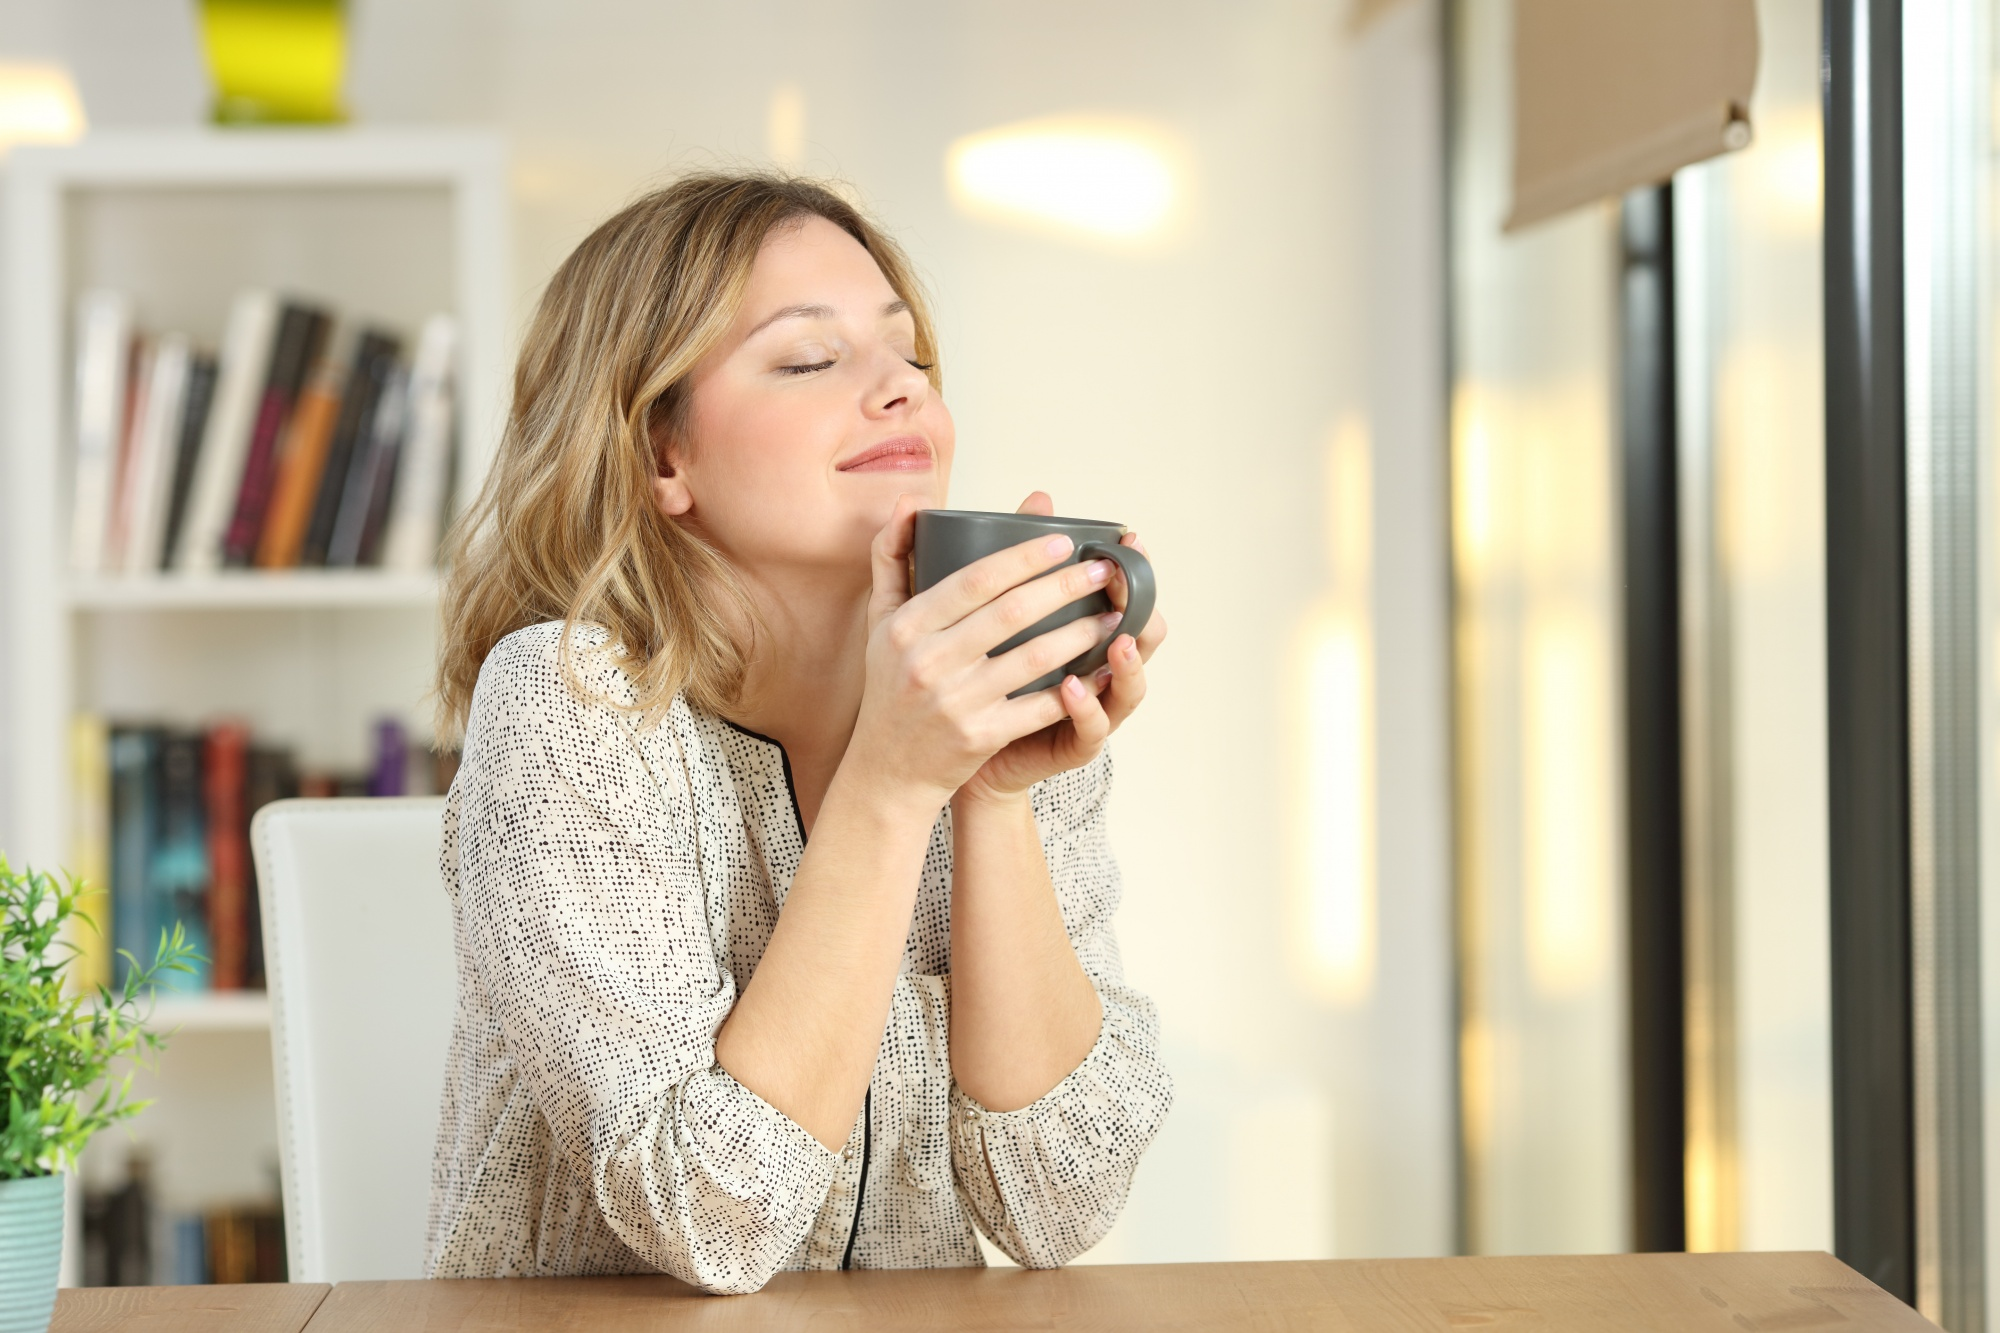 Blonde woman cradling a hot beverage with her eyes closed enjoying the moment